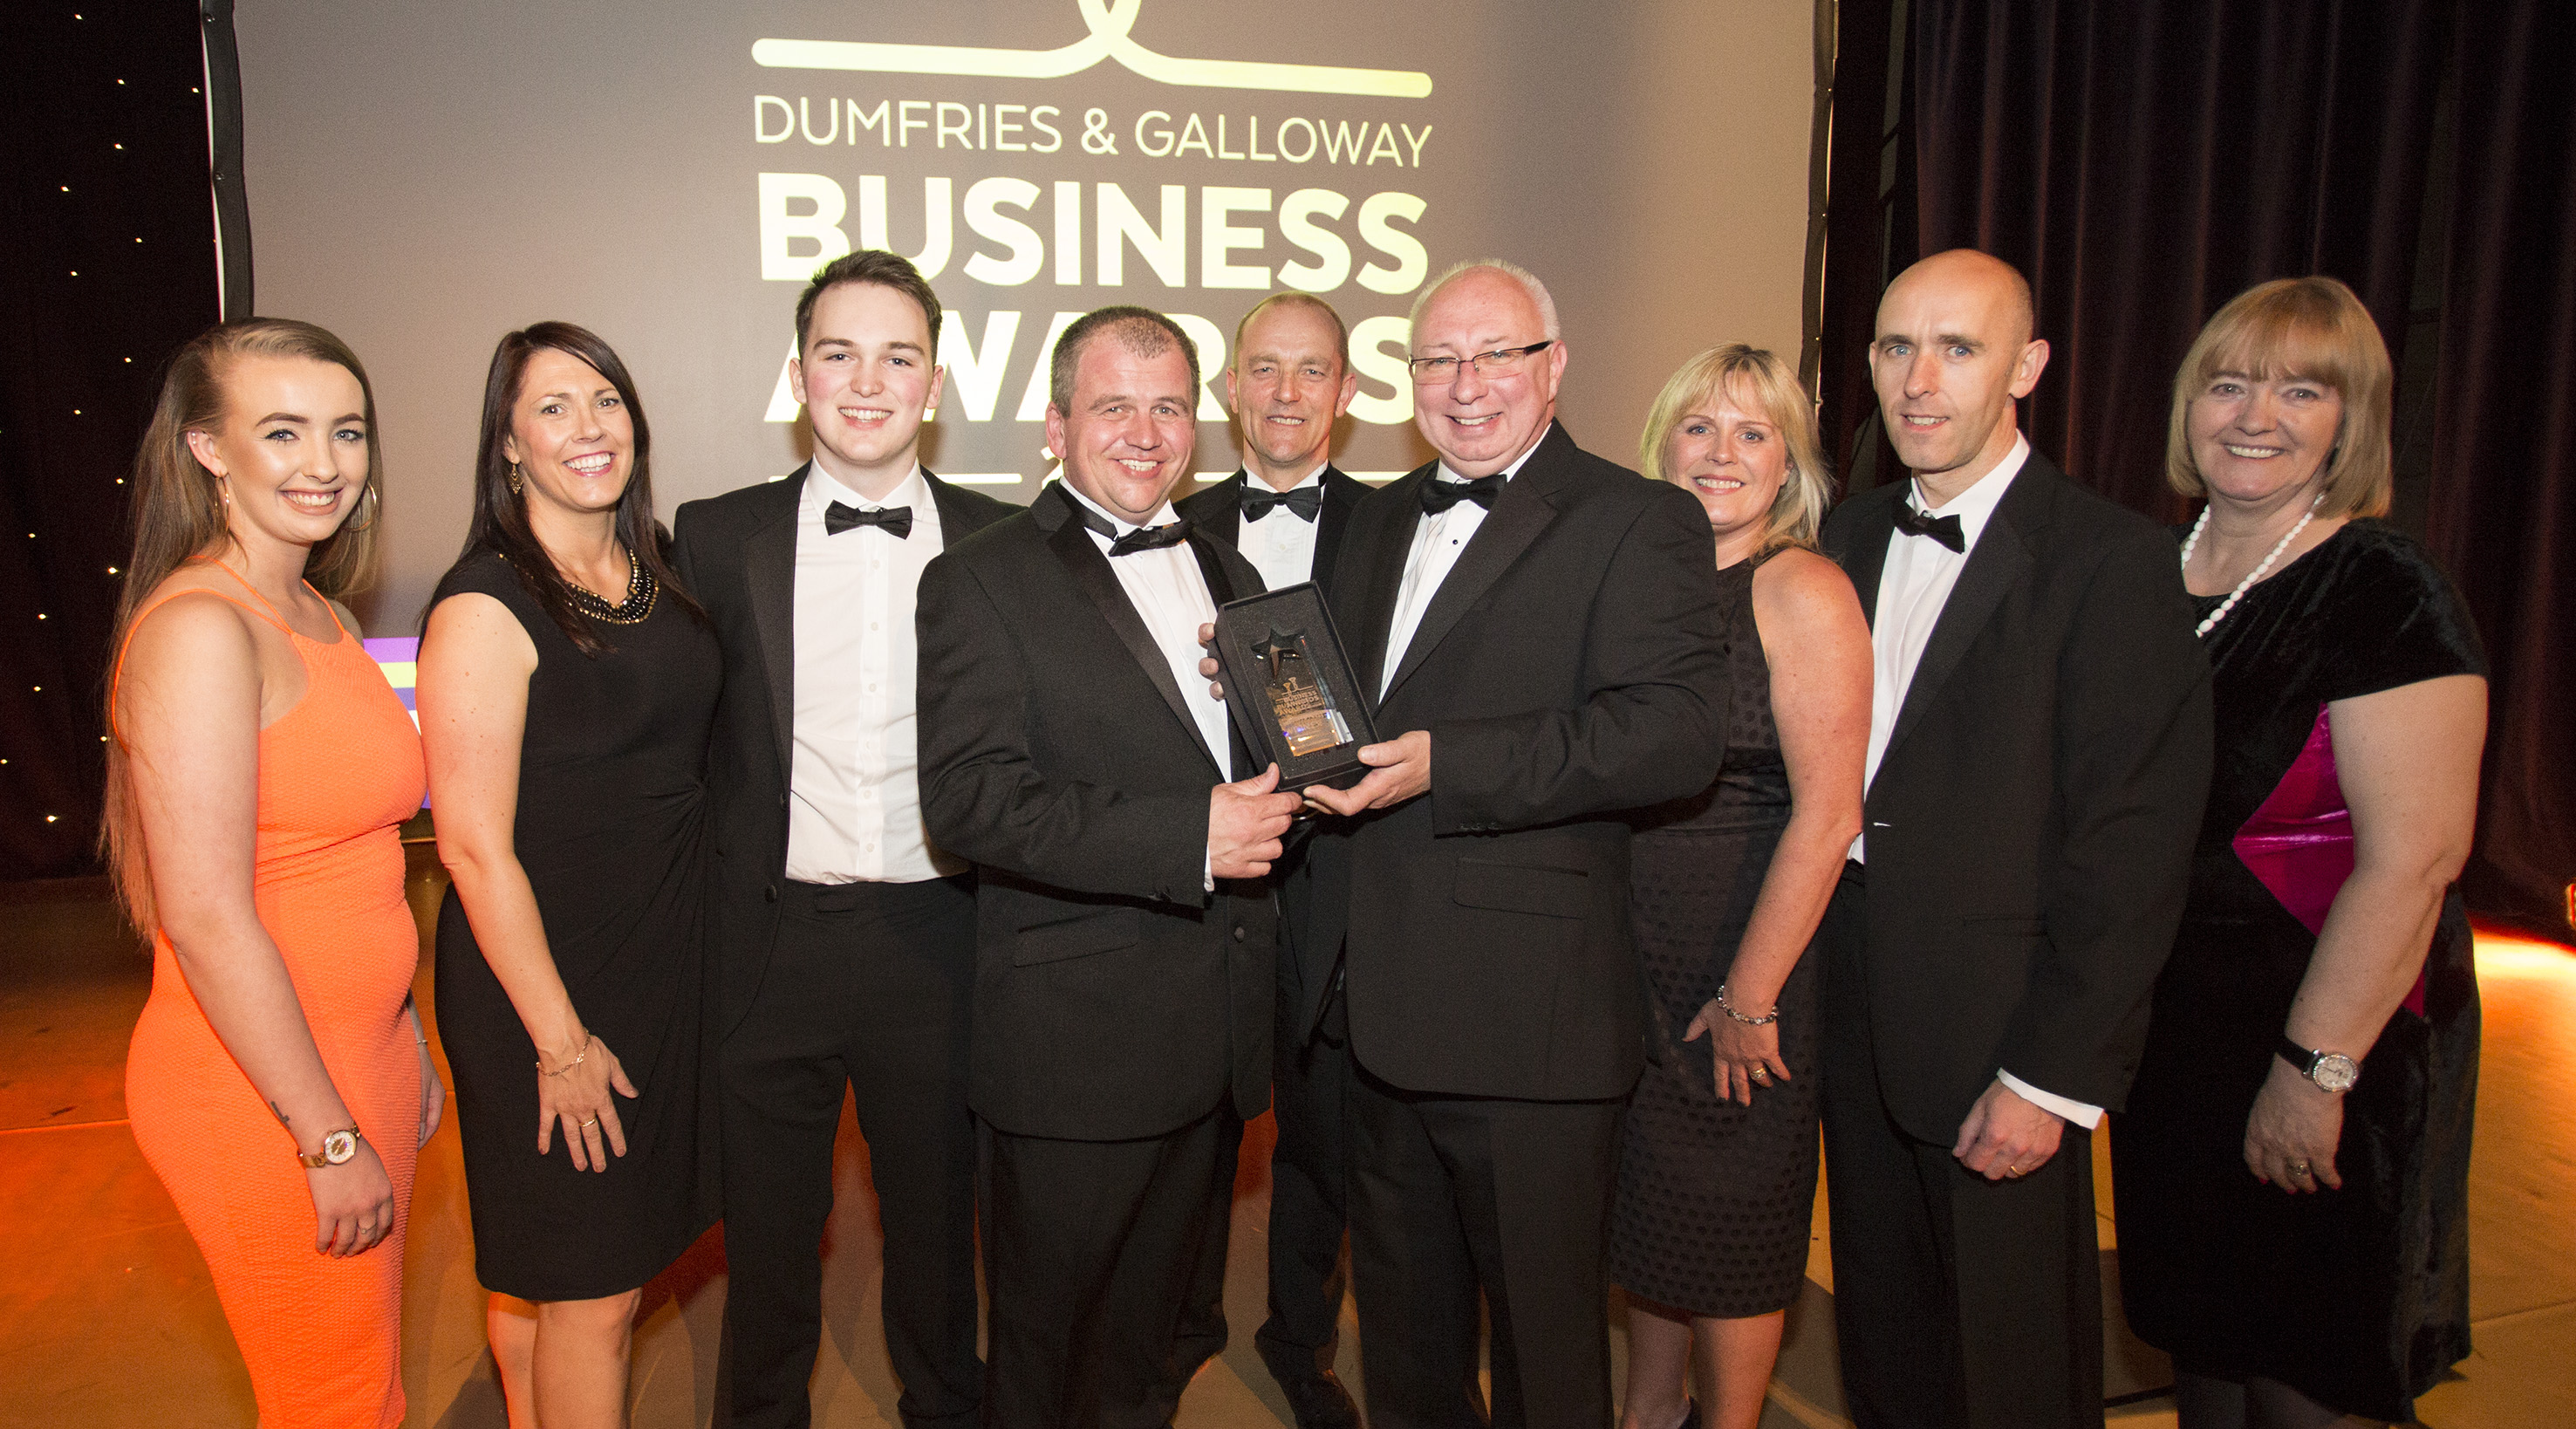 Dumfries and Galloway Business Award for Outstanding Performing Business 2016